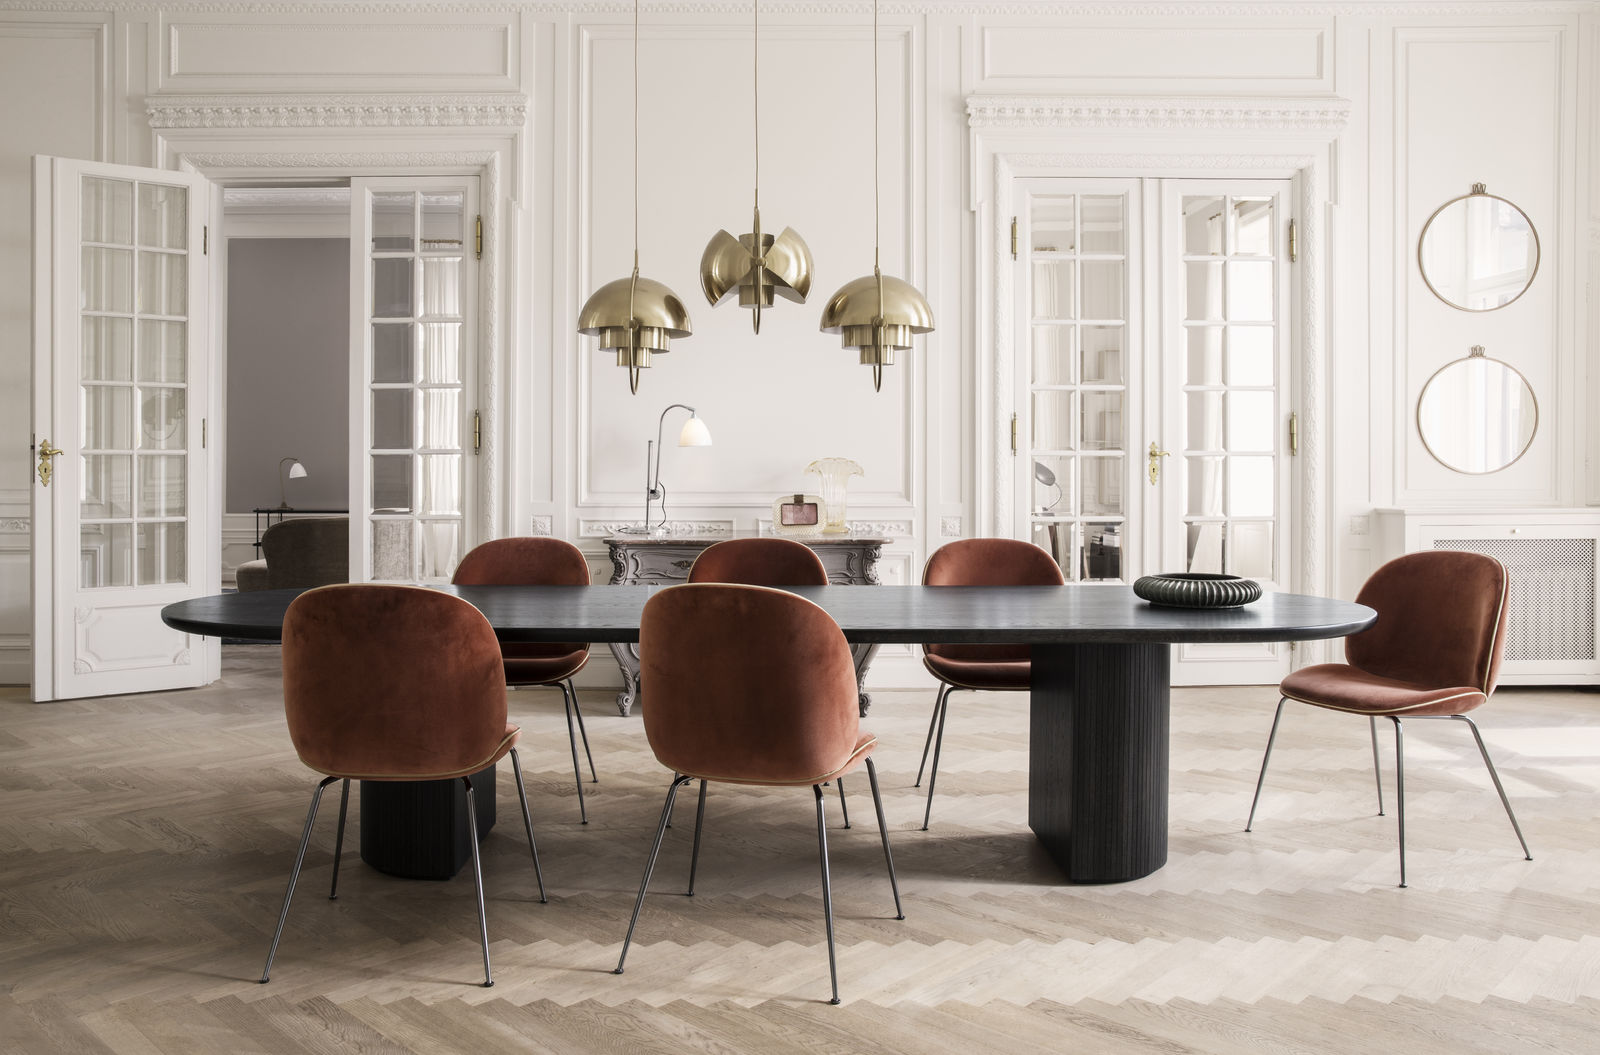 randaccio-mirror_beetle-chair-velluto-641-piping-luca-g066_017_moon-dining-tablel_multi-lite_bestlite-bl1_on-1600x1600